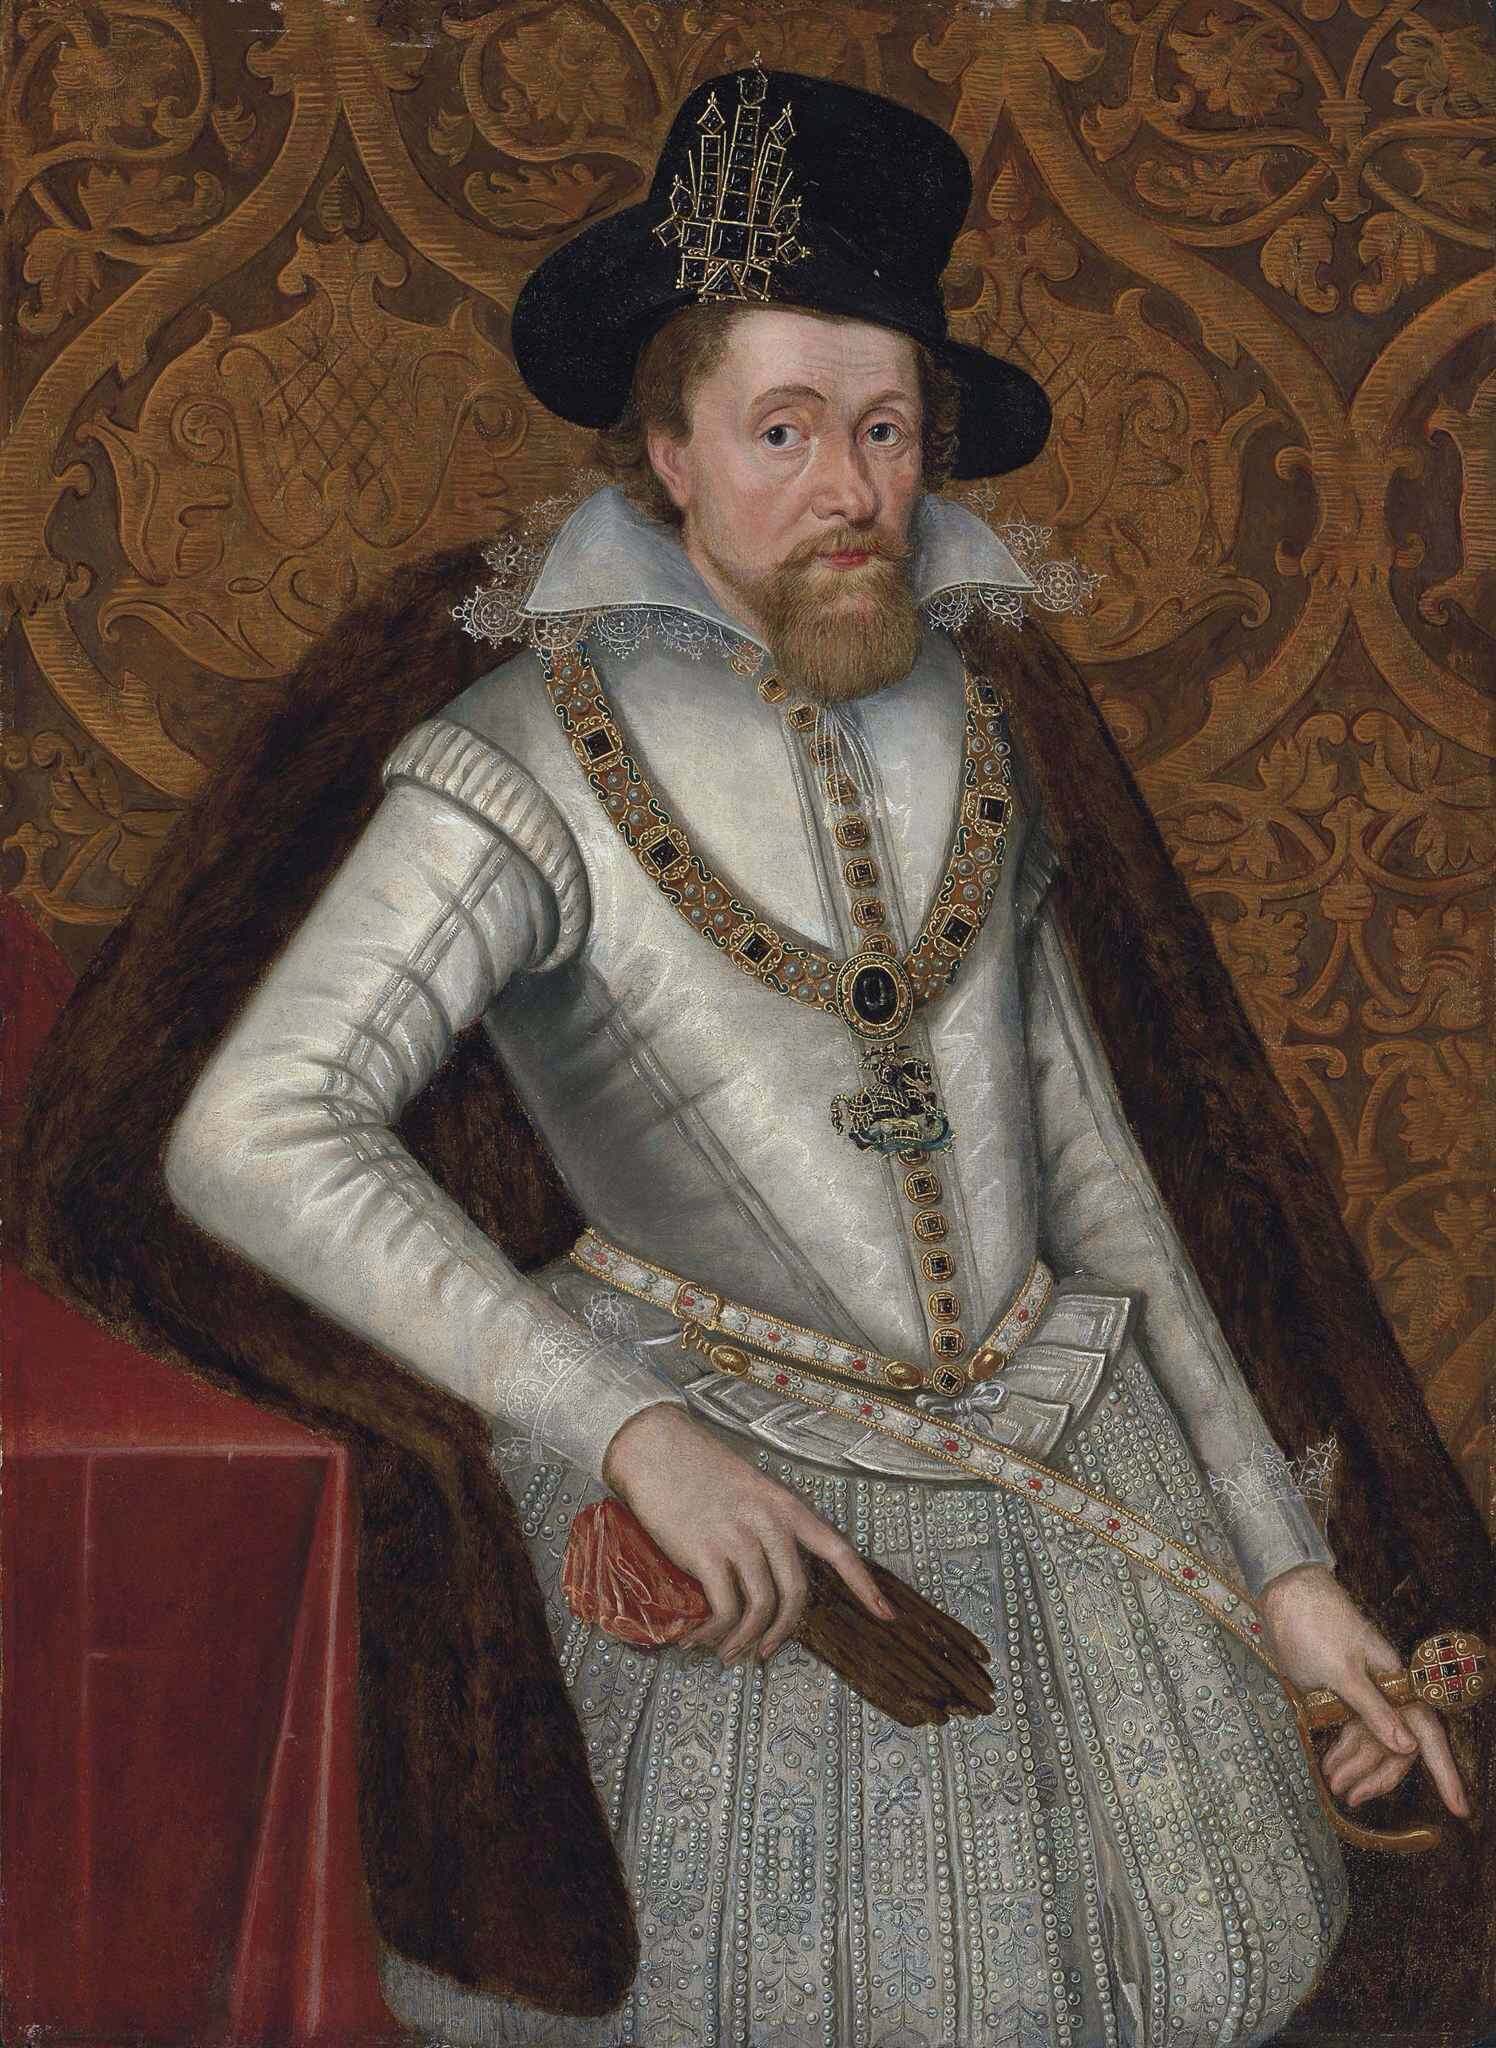 "the failure of king james the 1st of england James i, (born june 19, 1566, edinburgh castle, edinburgh, scotland—died march 27, 1625, theobalds, hertfordshire, england), king of scotland (as james vi) from 1567 to 1625 and first stuart king of england from 1603 to 1625, who styled himself ""king of great britain"" james was a strong advocate of royal absolutism, and his conflicts with an increasingly self-assertive parliament set."